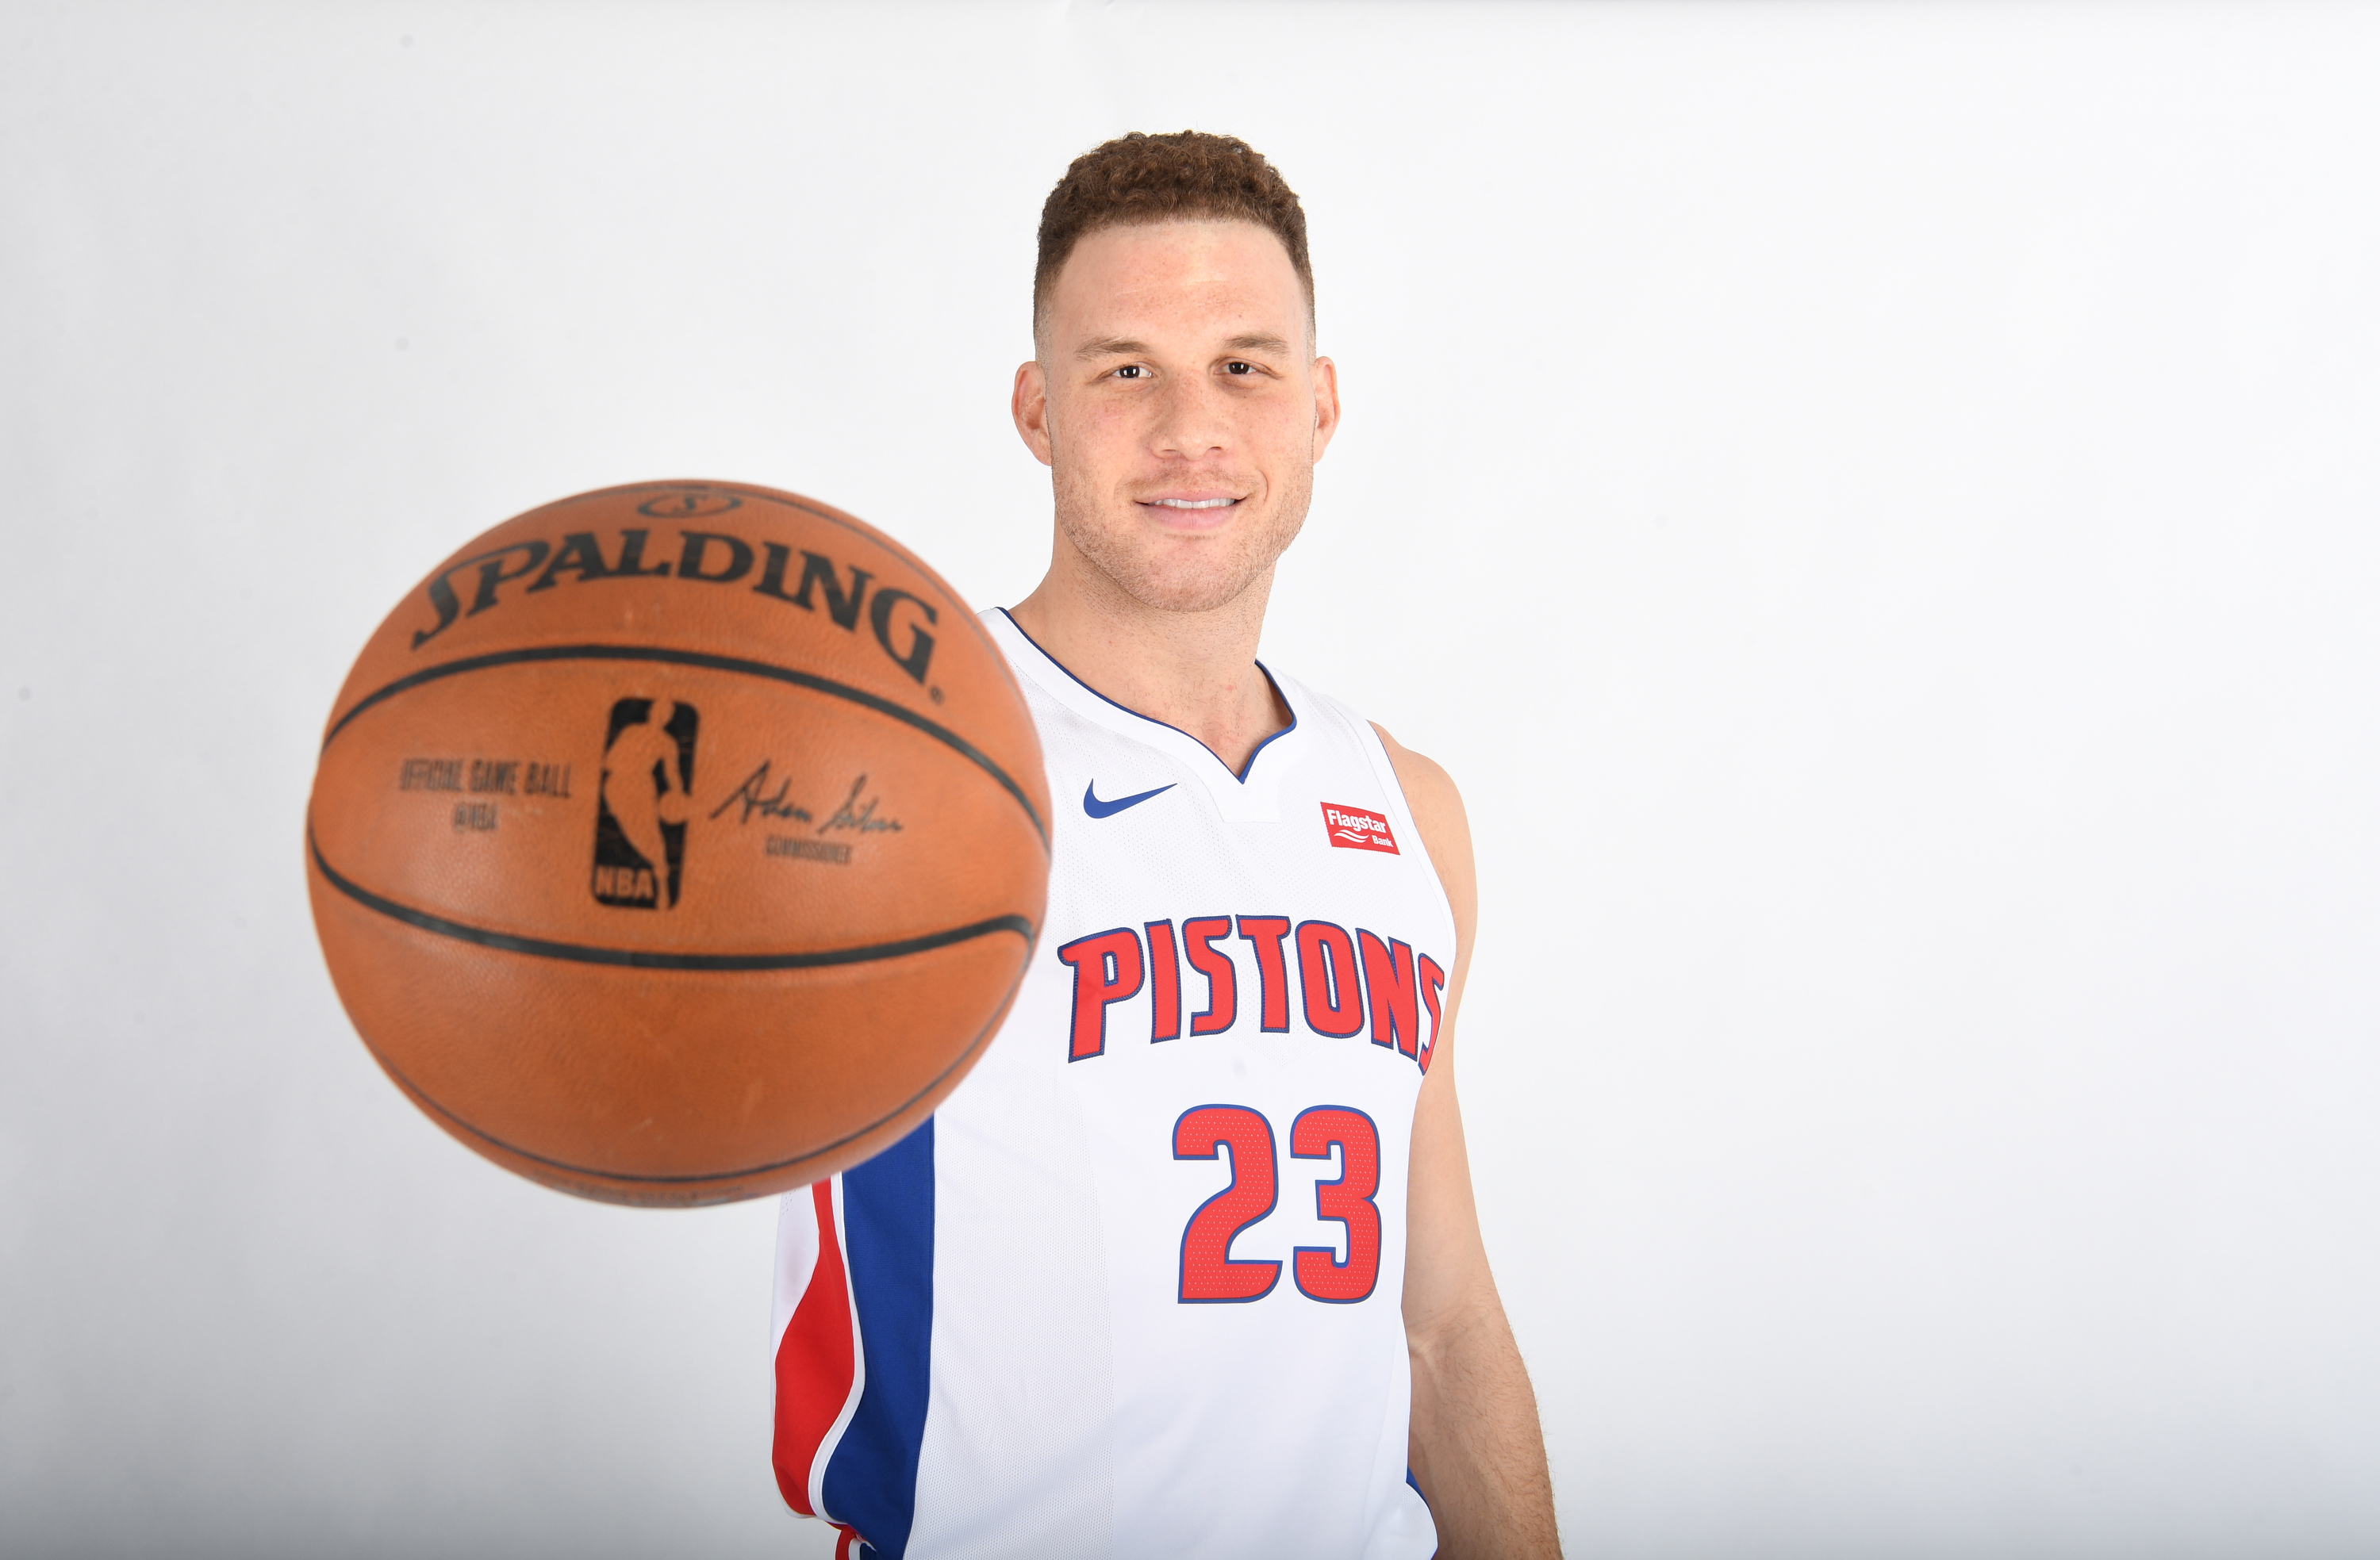 Blake Griffin makes Detroit Pistons debut, forgets jersey